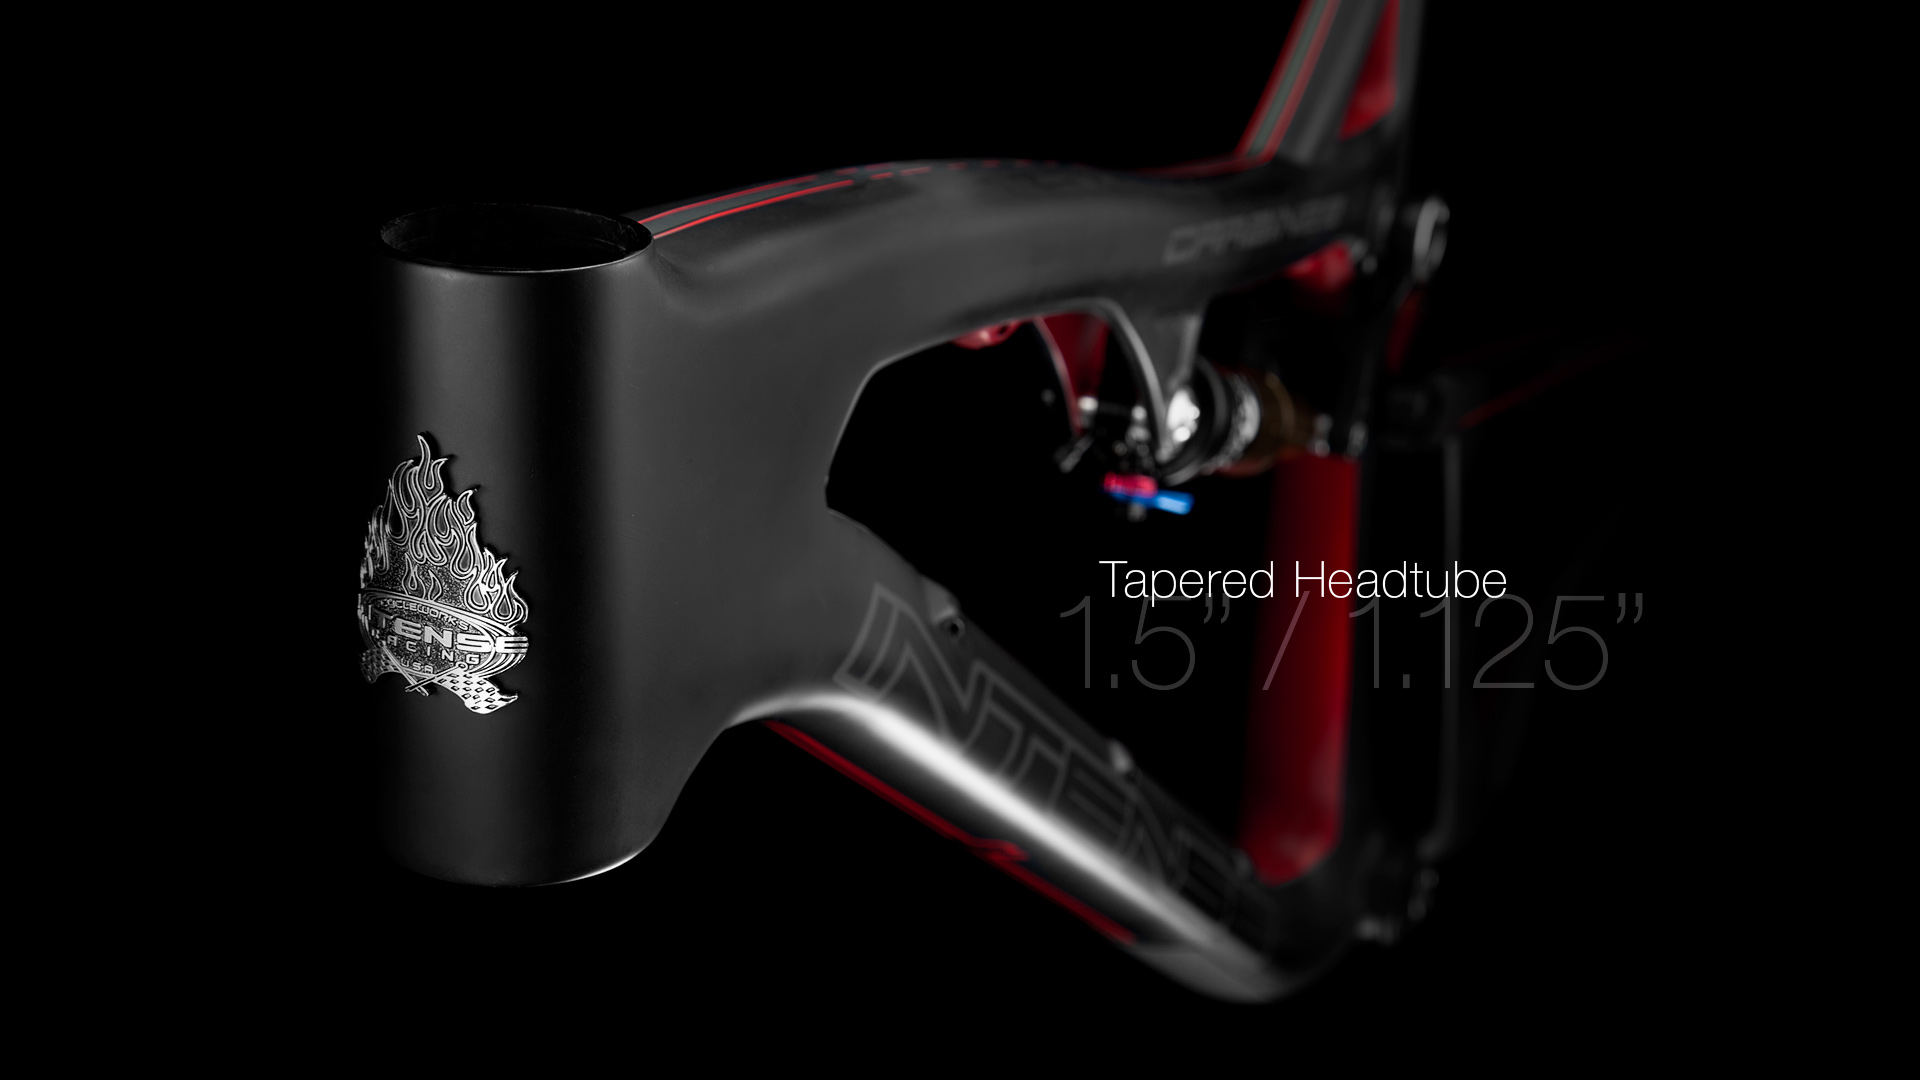 sl_Tapered_Headtube